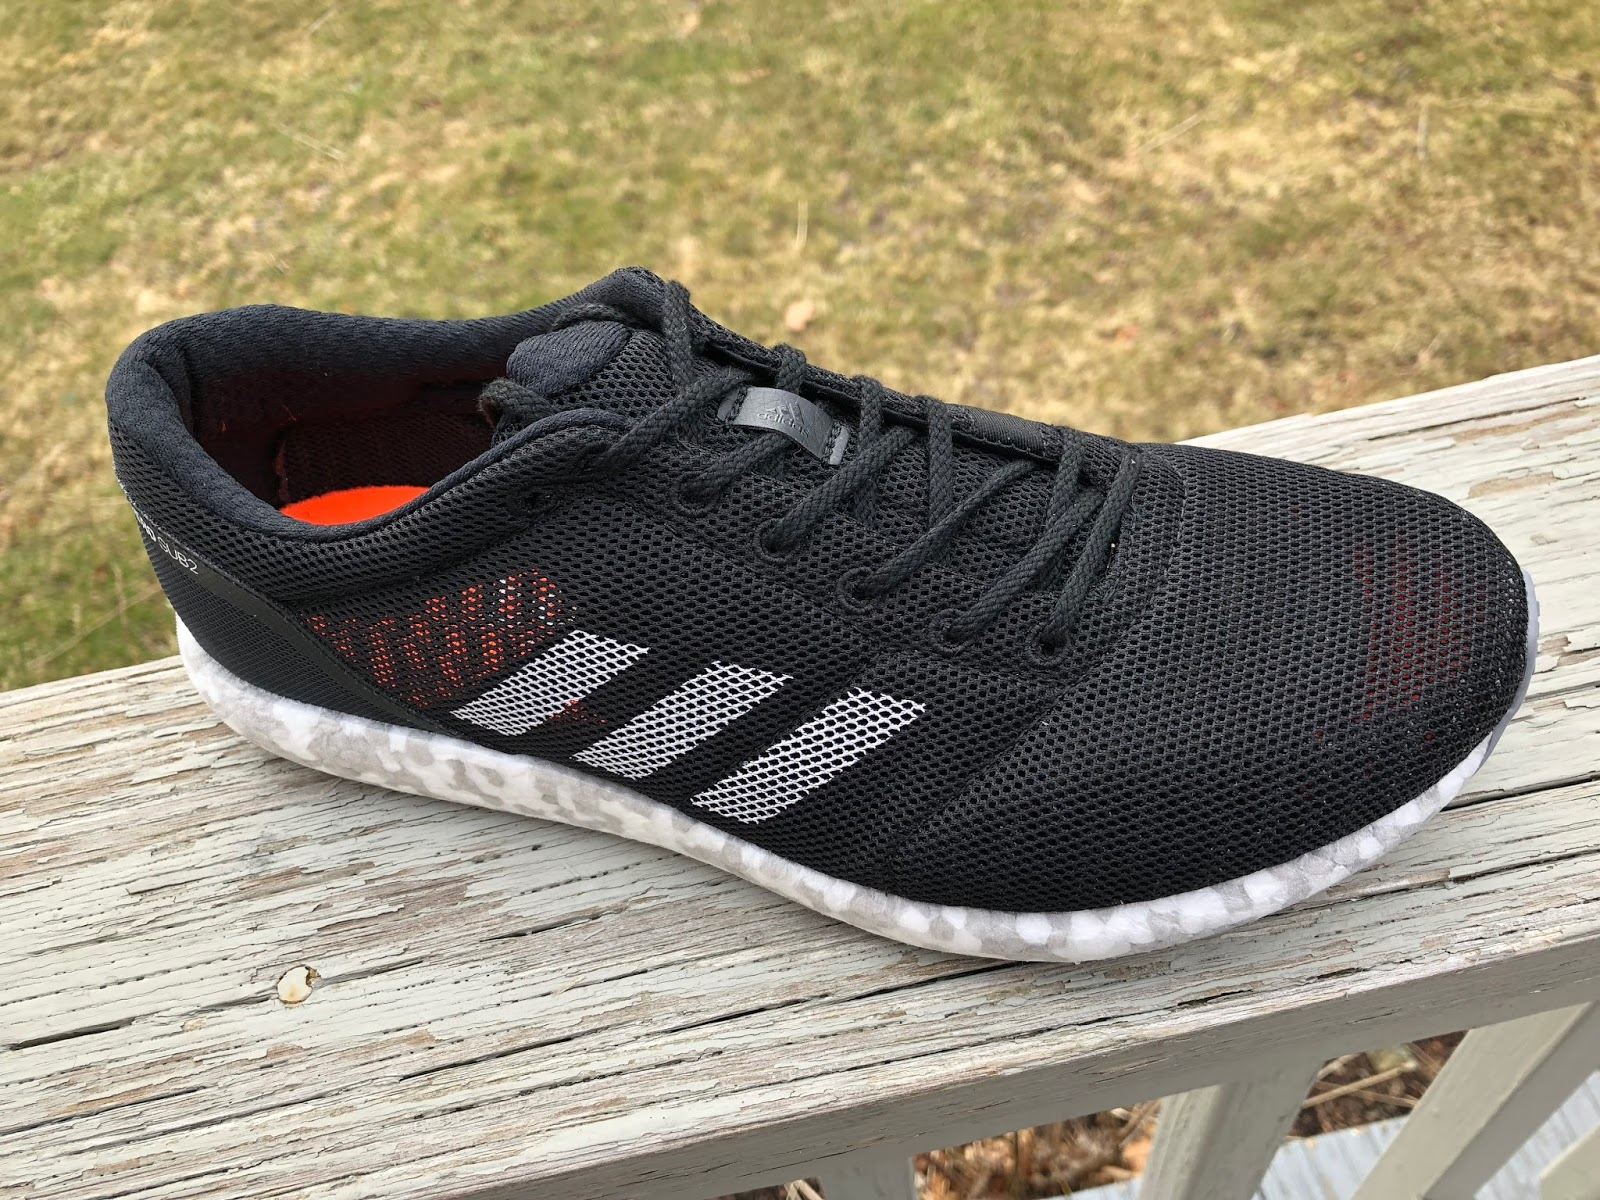 3f1443ce6572 Road Trail Run  In Depth Adidas Adizero Sub2 Multi Tester Review ...